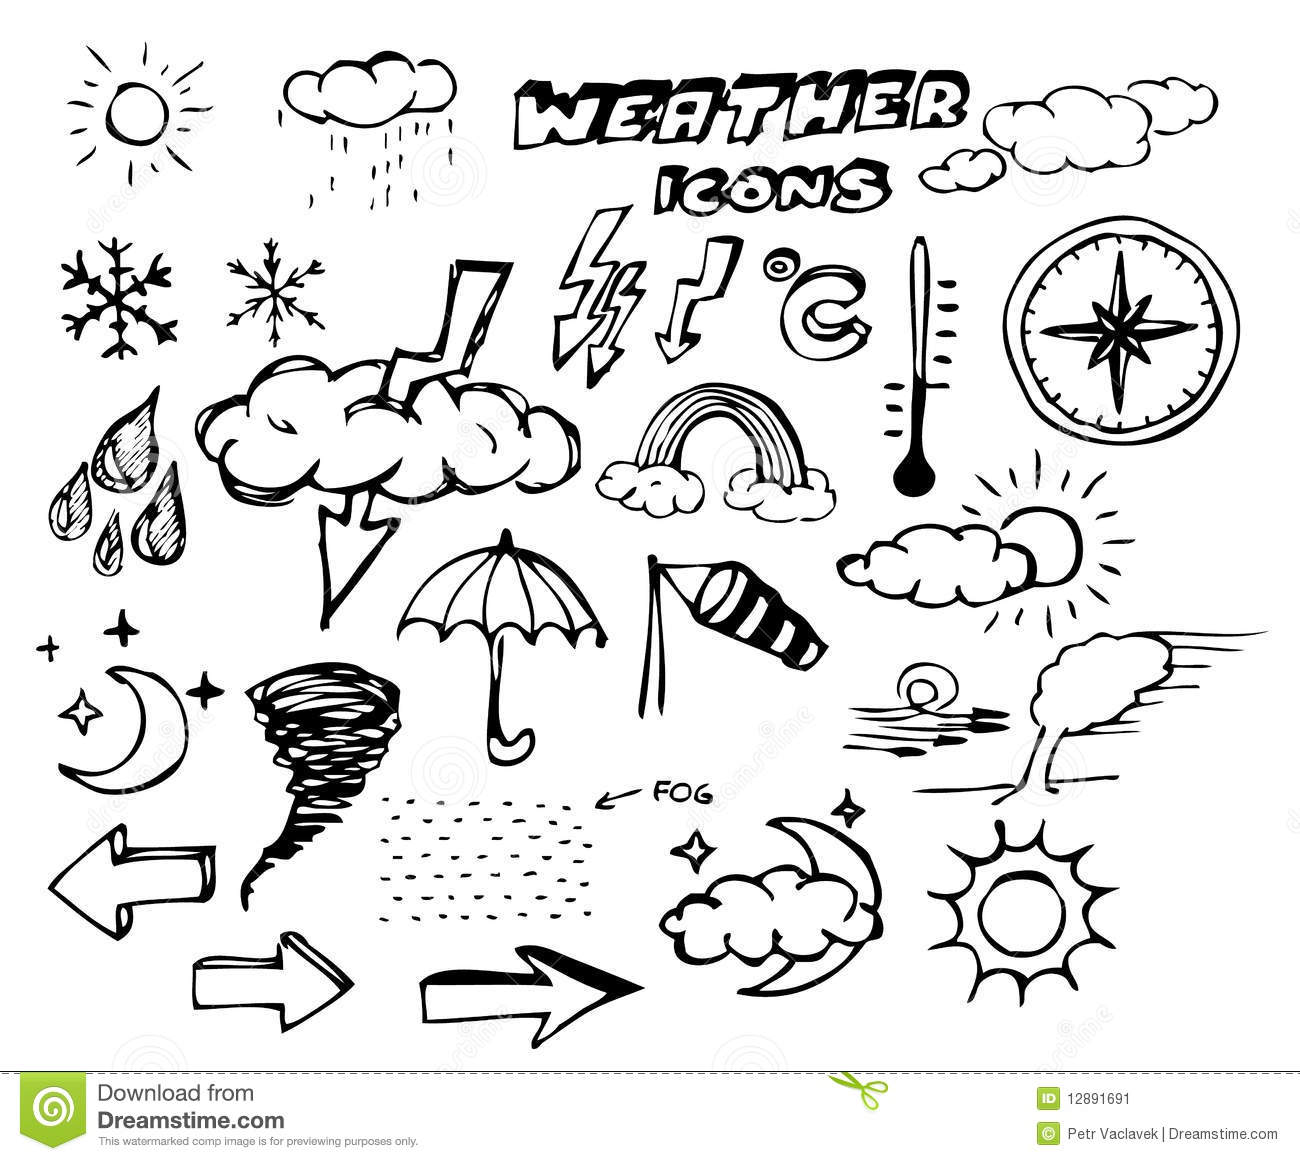 Thunderstorm Cloud Doodle Drawing Vector Illustration